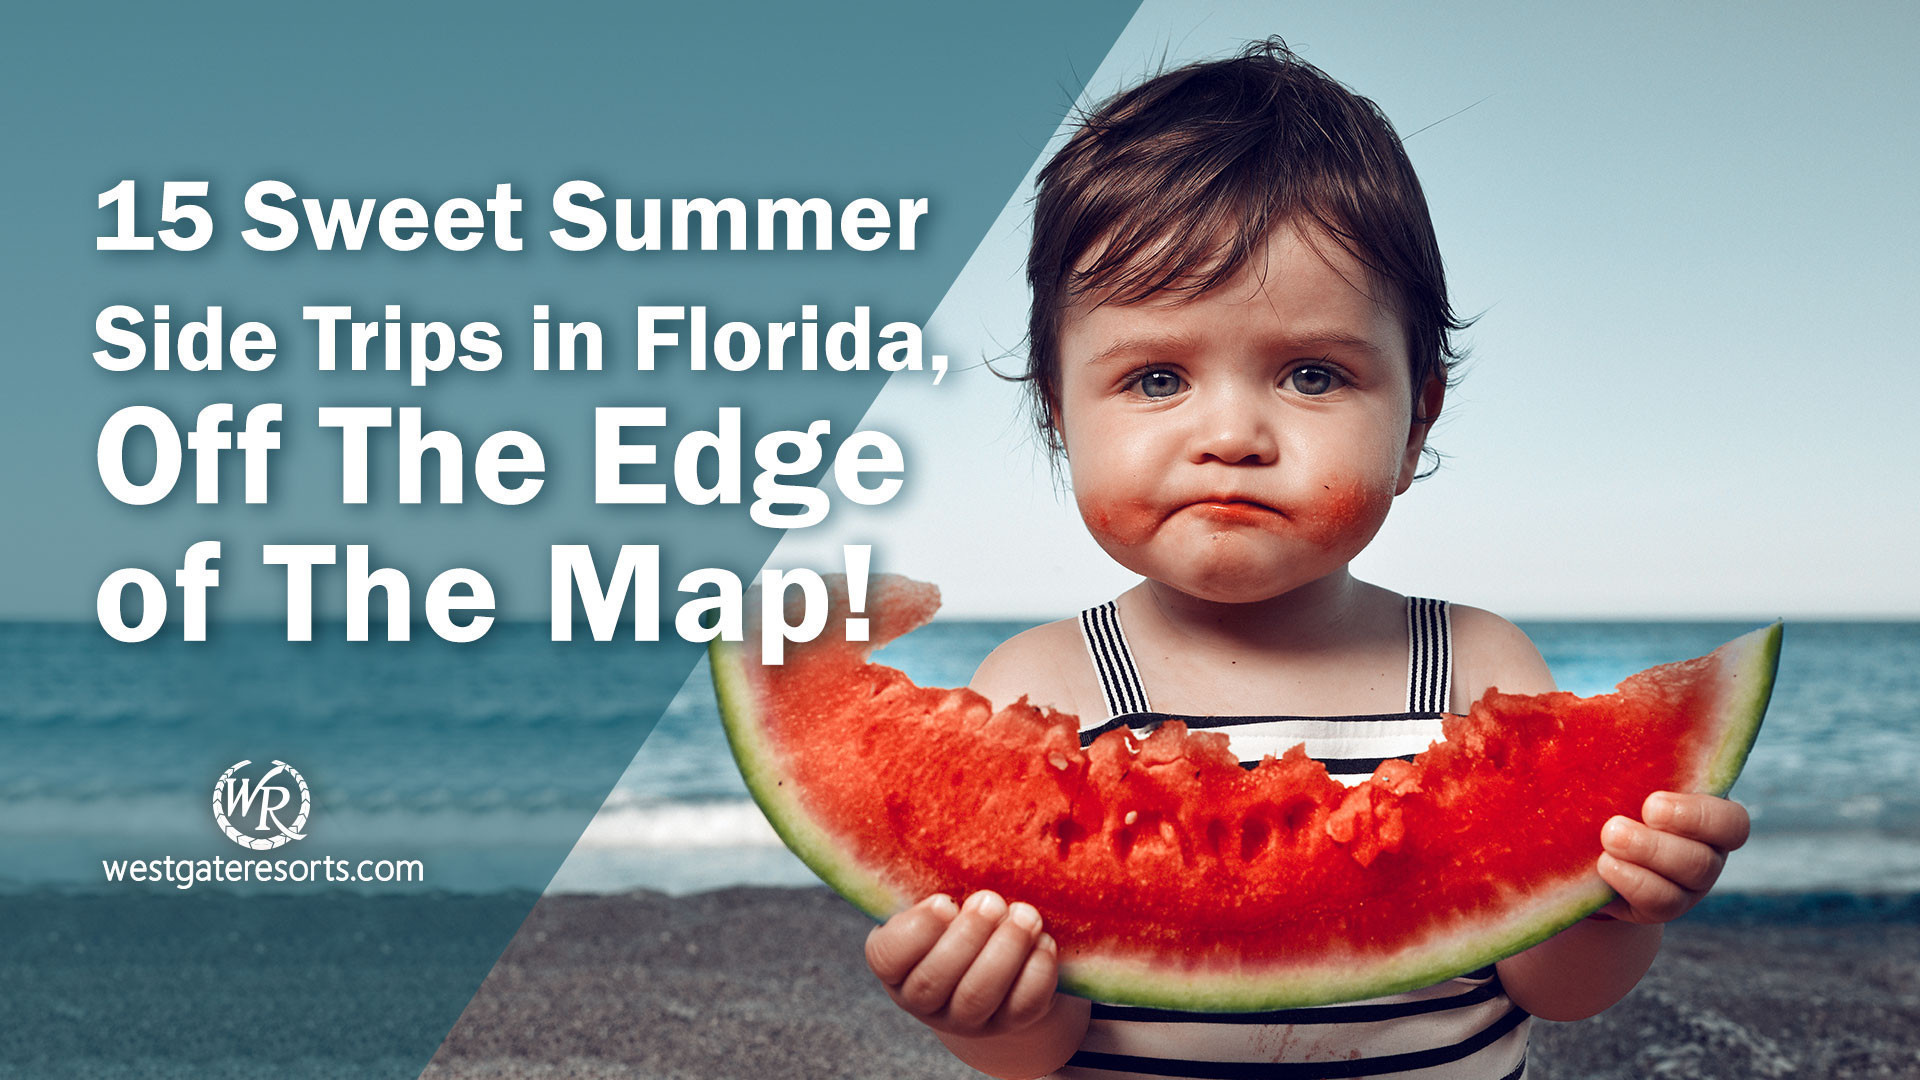 15 Sweet Summer Side Trips in Florida, Off The Edge of The Map! | Fun Day Trips In Florida